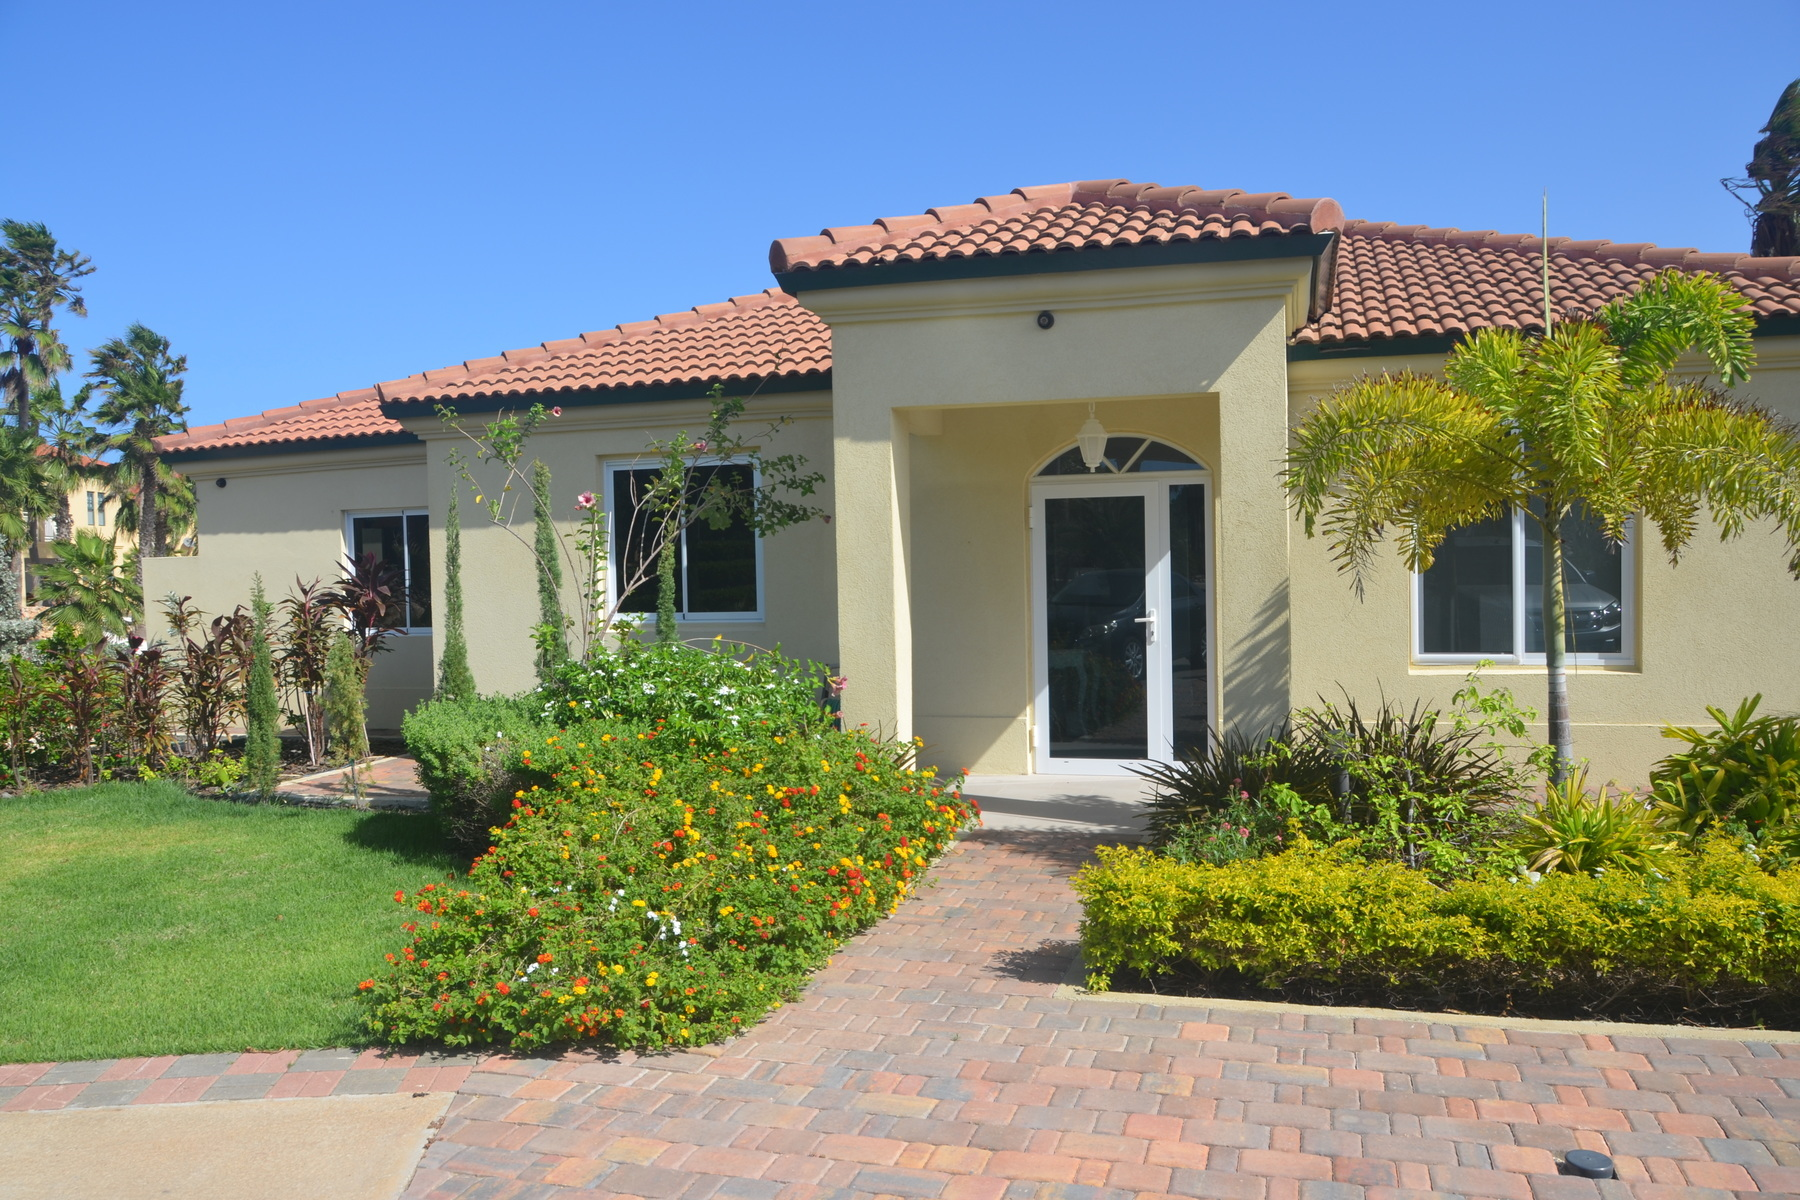 Single Family Home for Sale at Las Campeonas 29 Malmok, Aruba